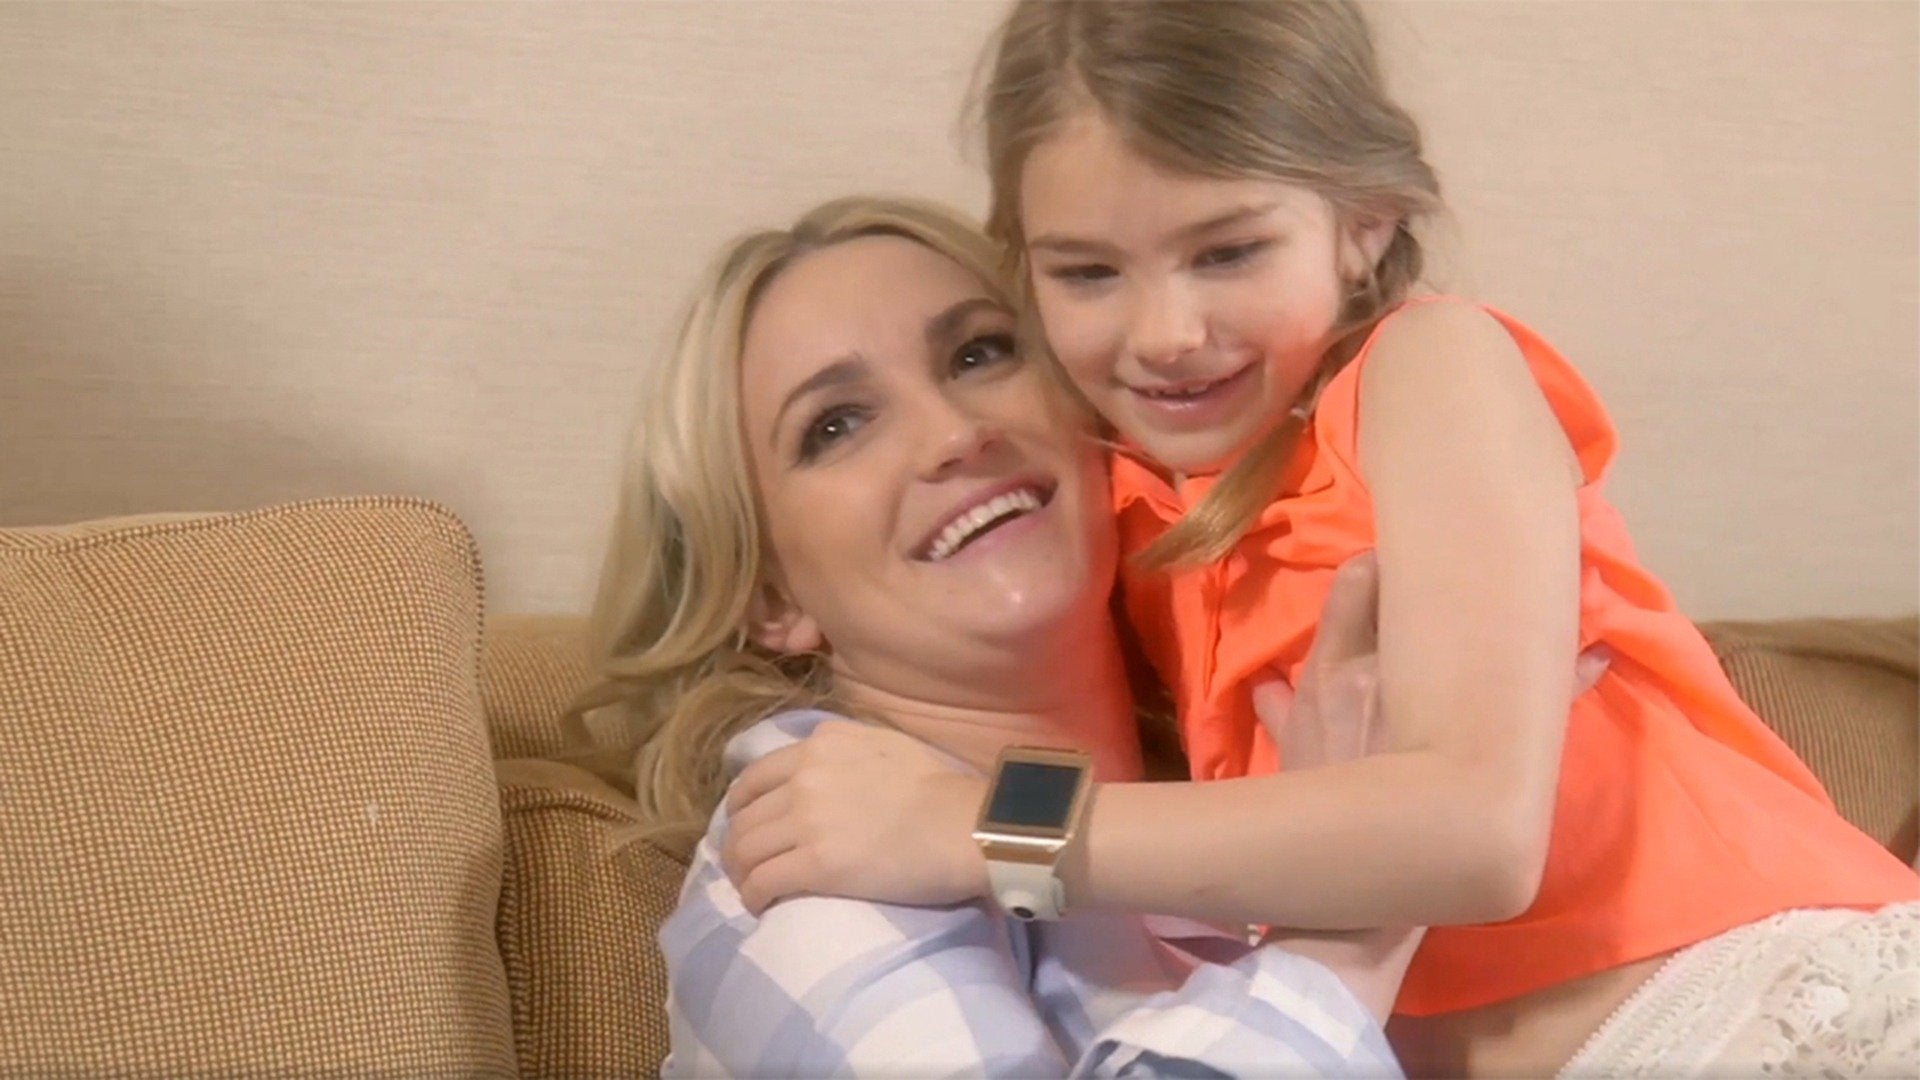 Jamie Lynn Spears: When the Lights Go Out